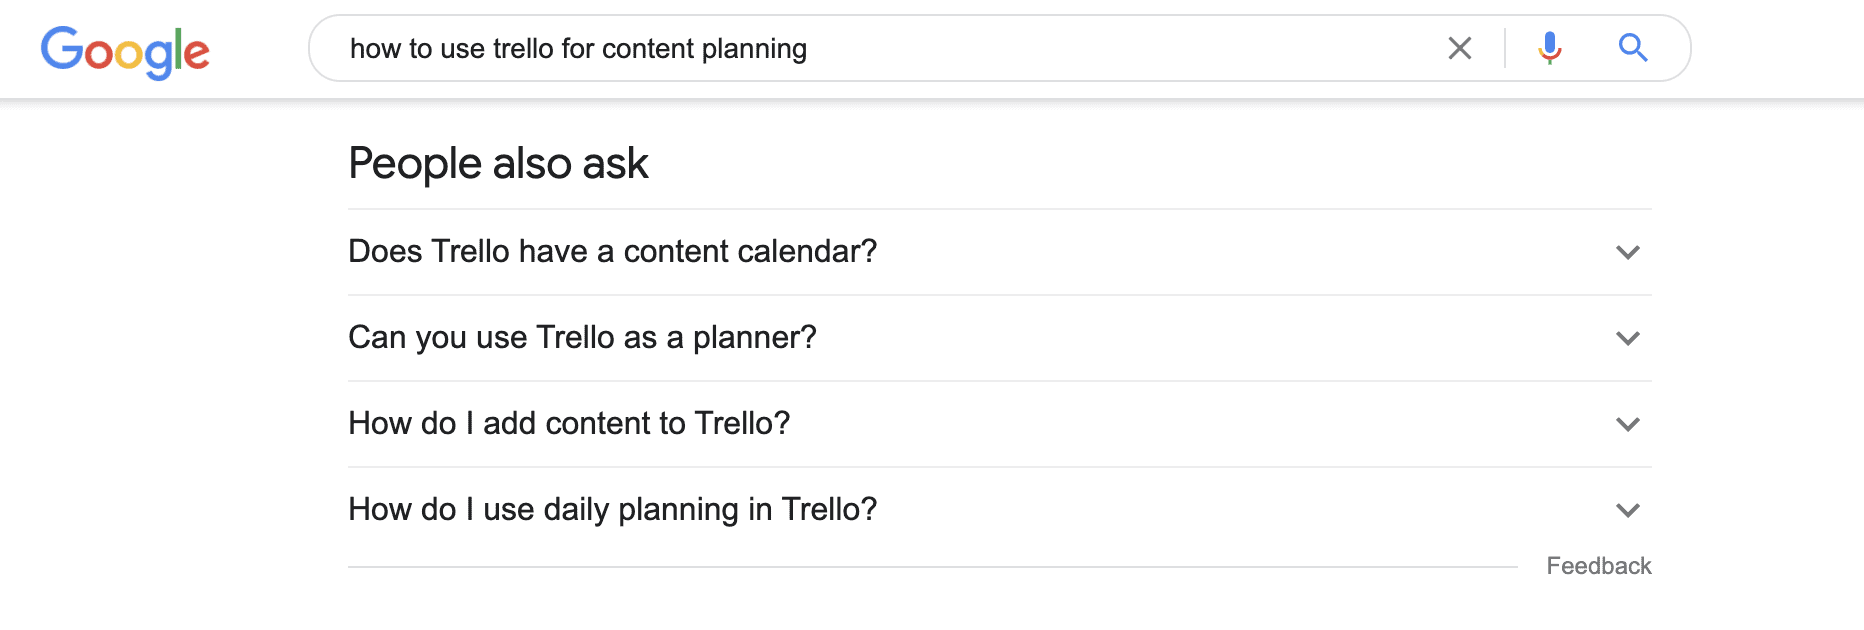 How to use trello for editorial content planning